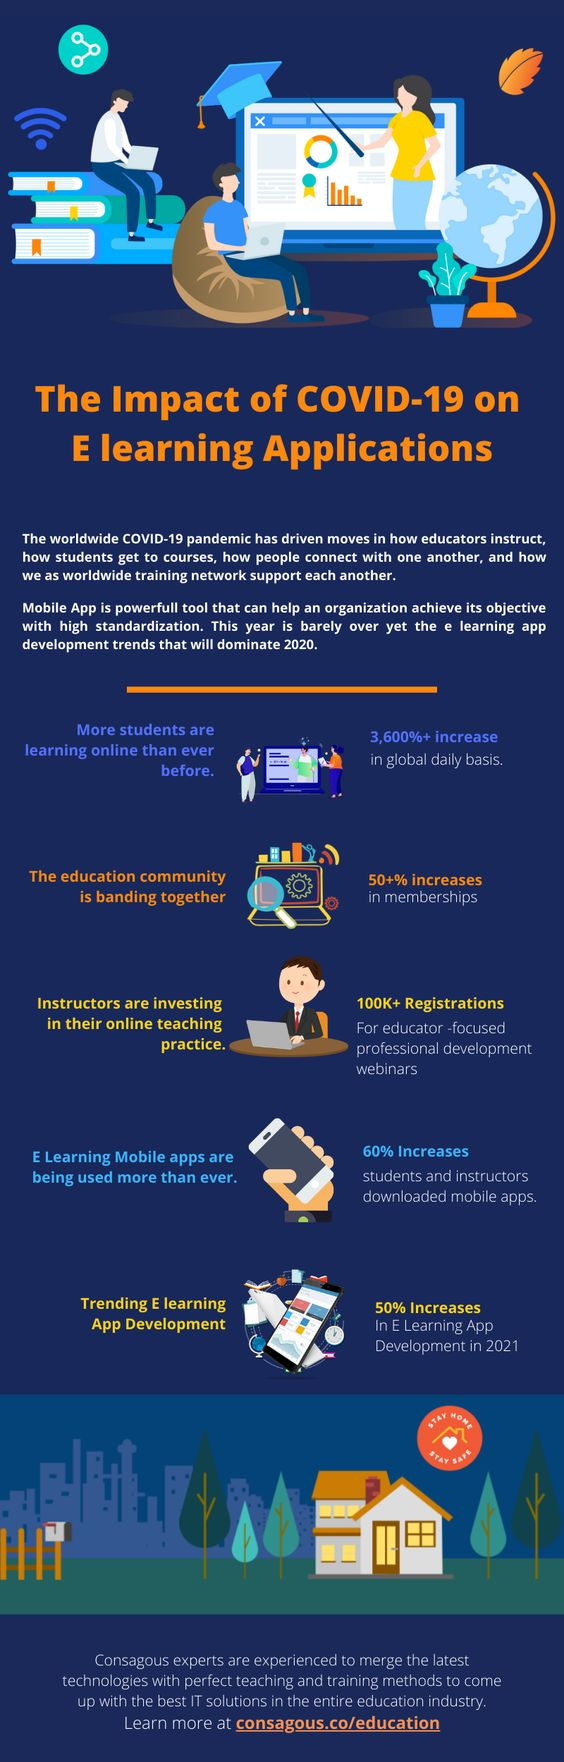 The Impact of COVID-19 on E learning Applications